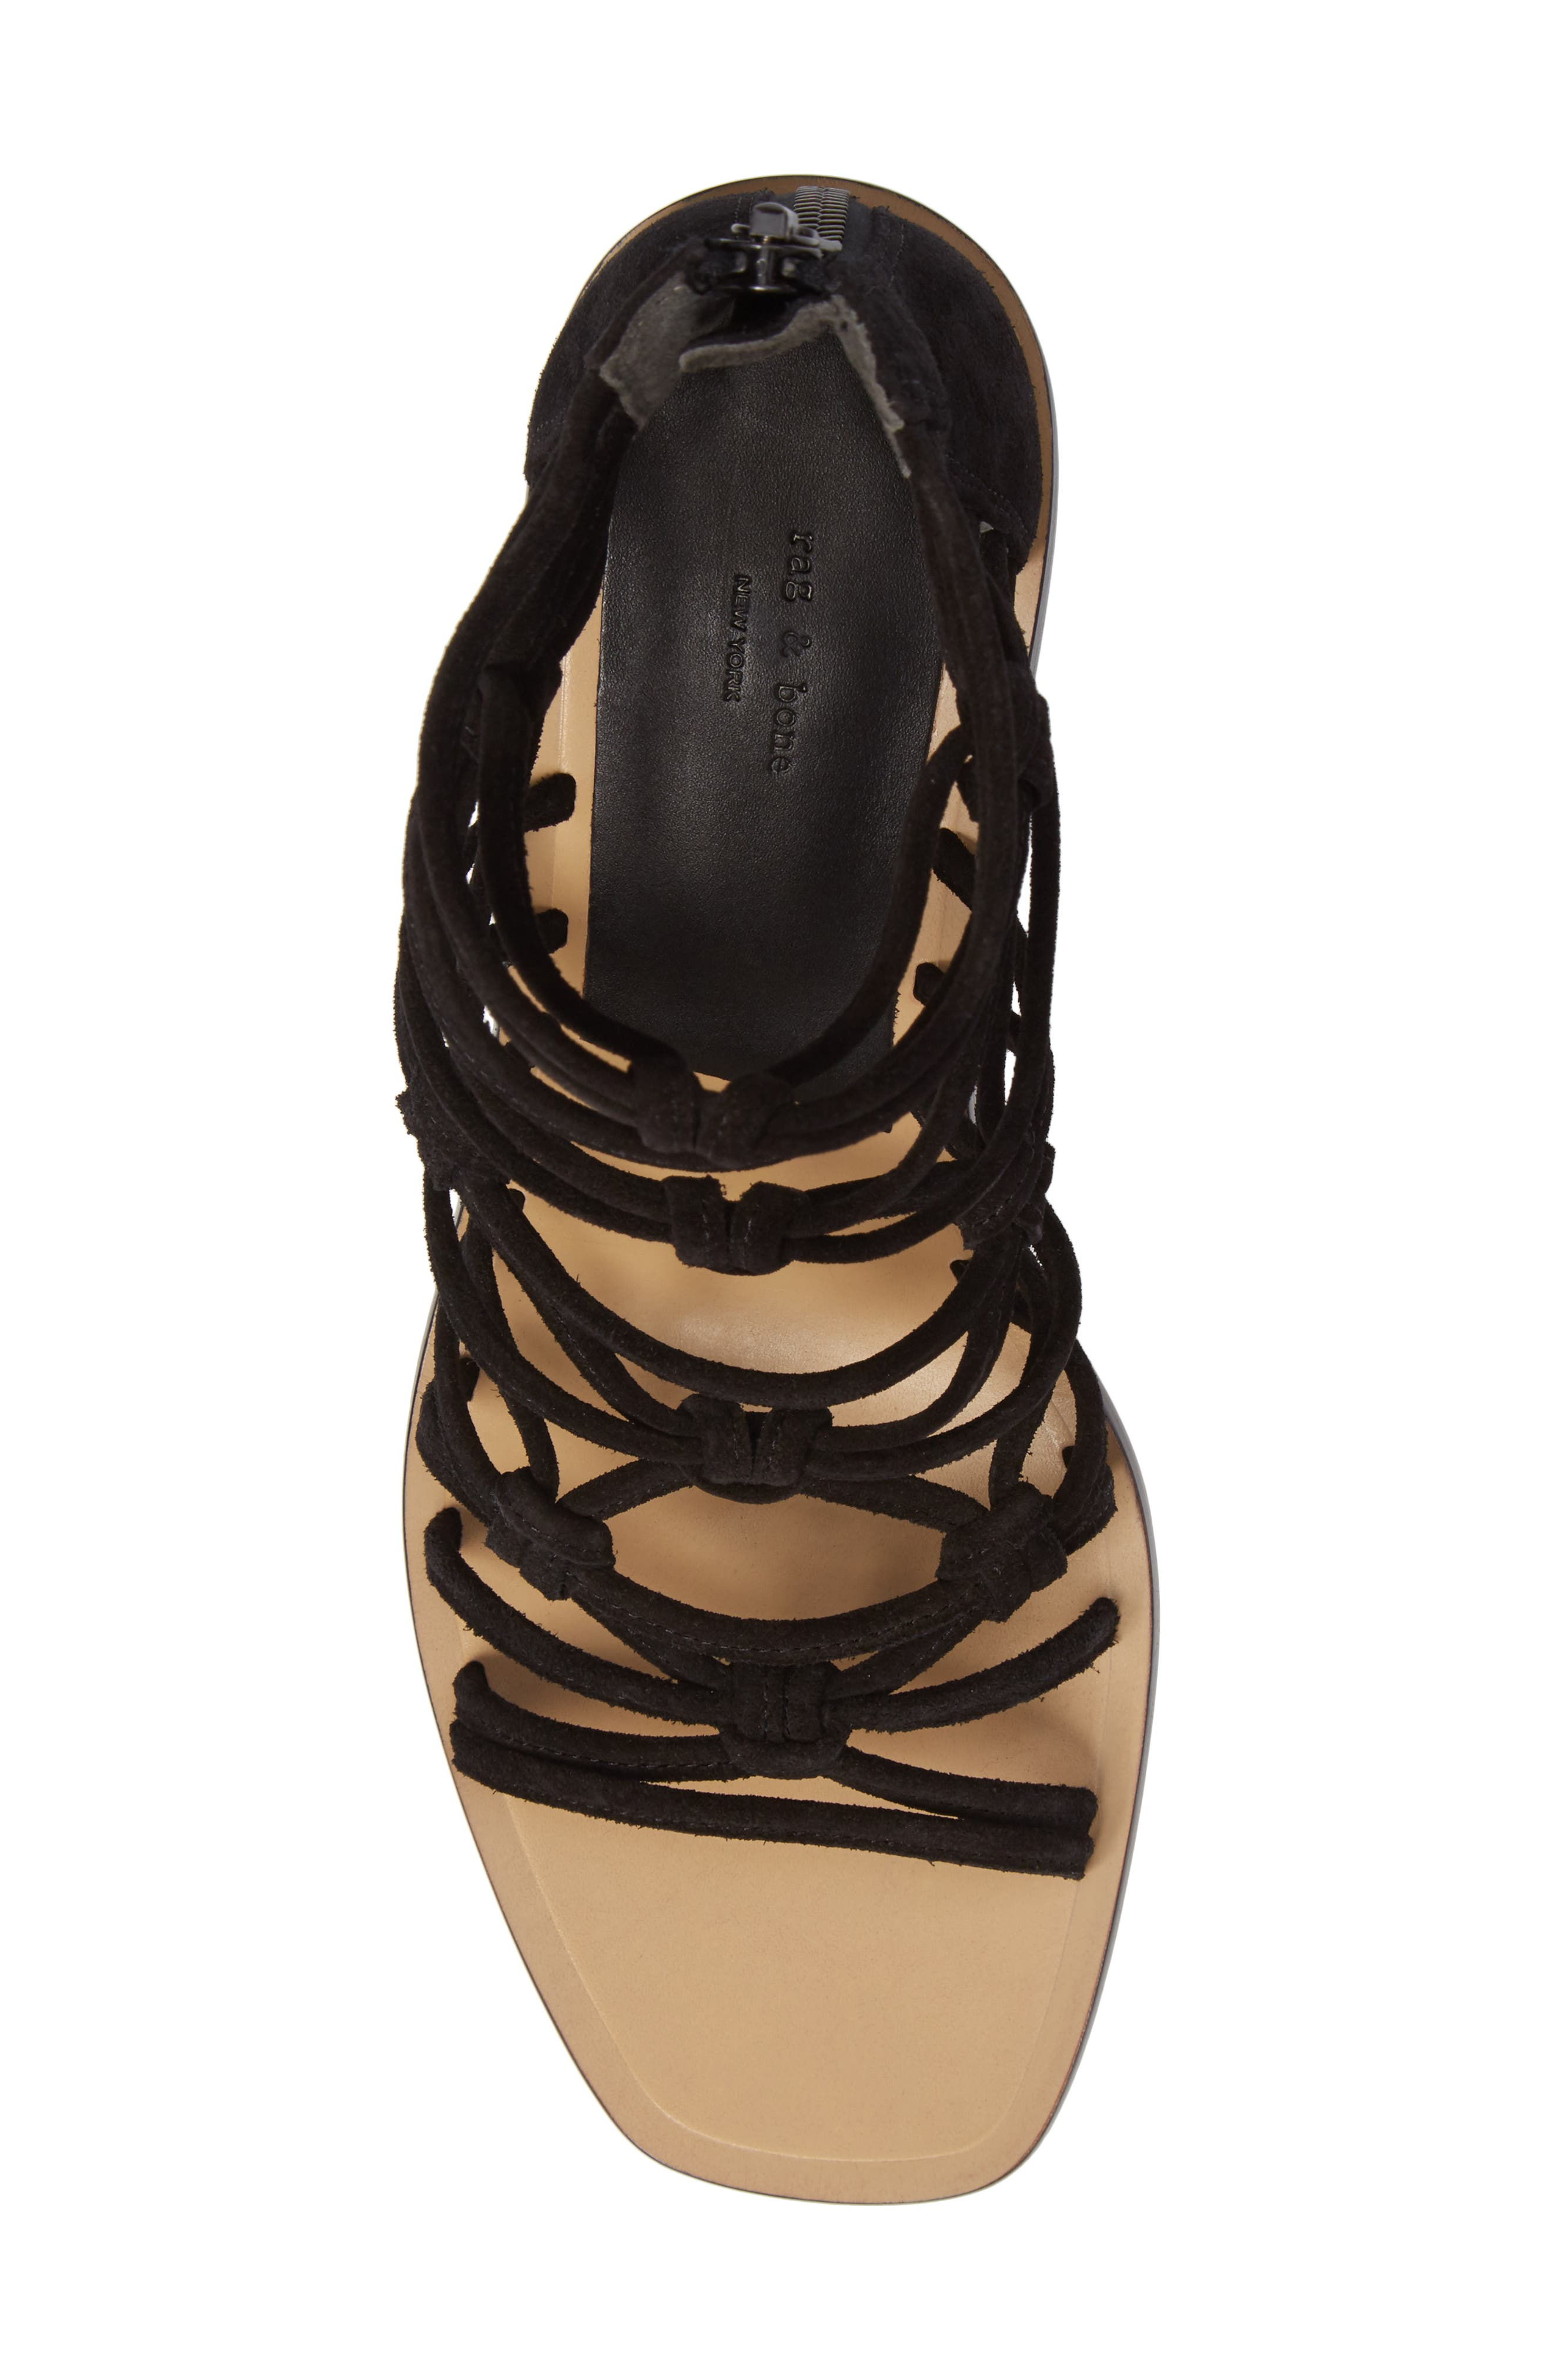 Camille Knotted Strappy Sandal,                             Alternate thumbnail 5, color,                             Black Suede